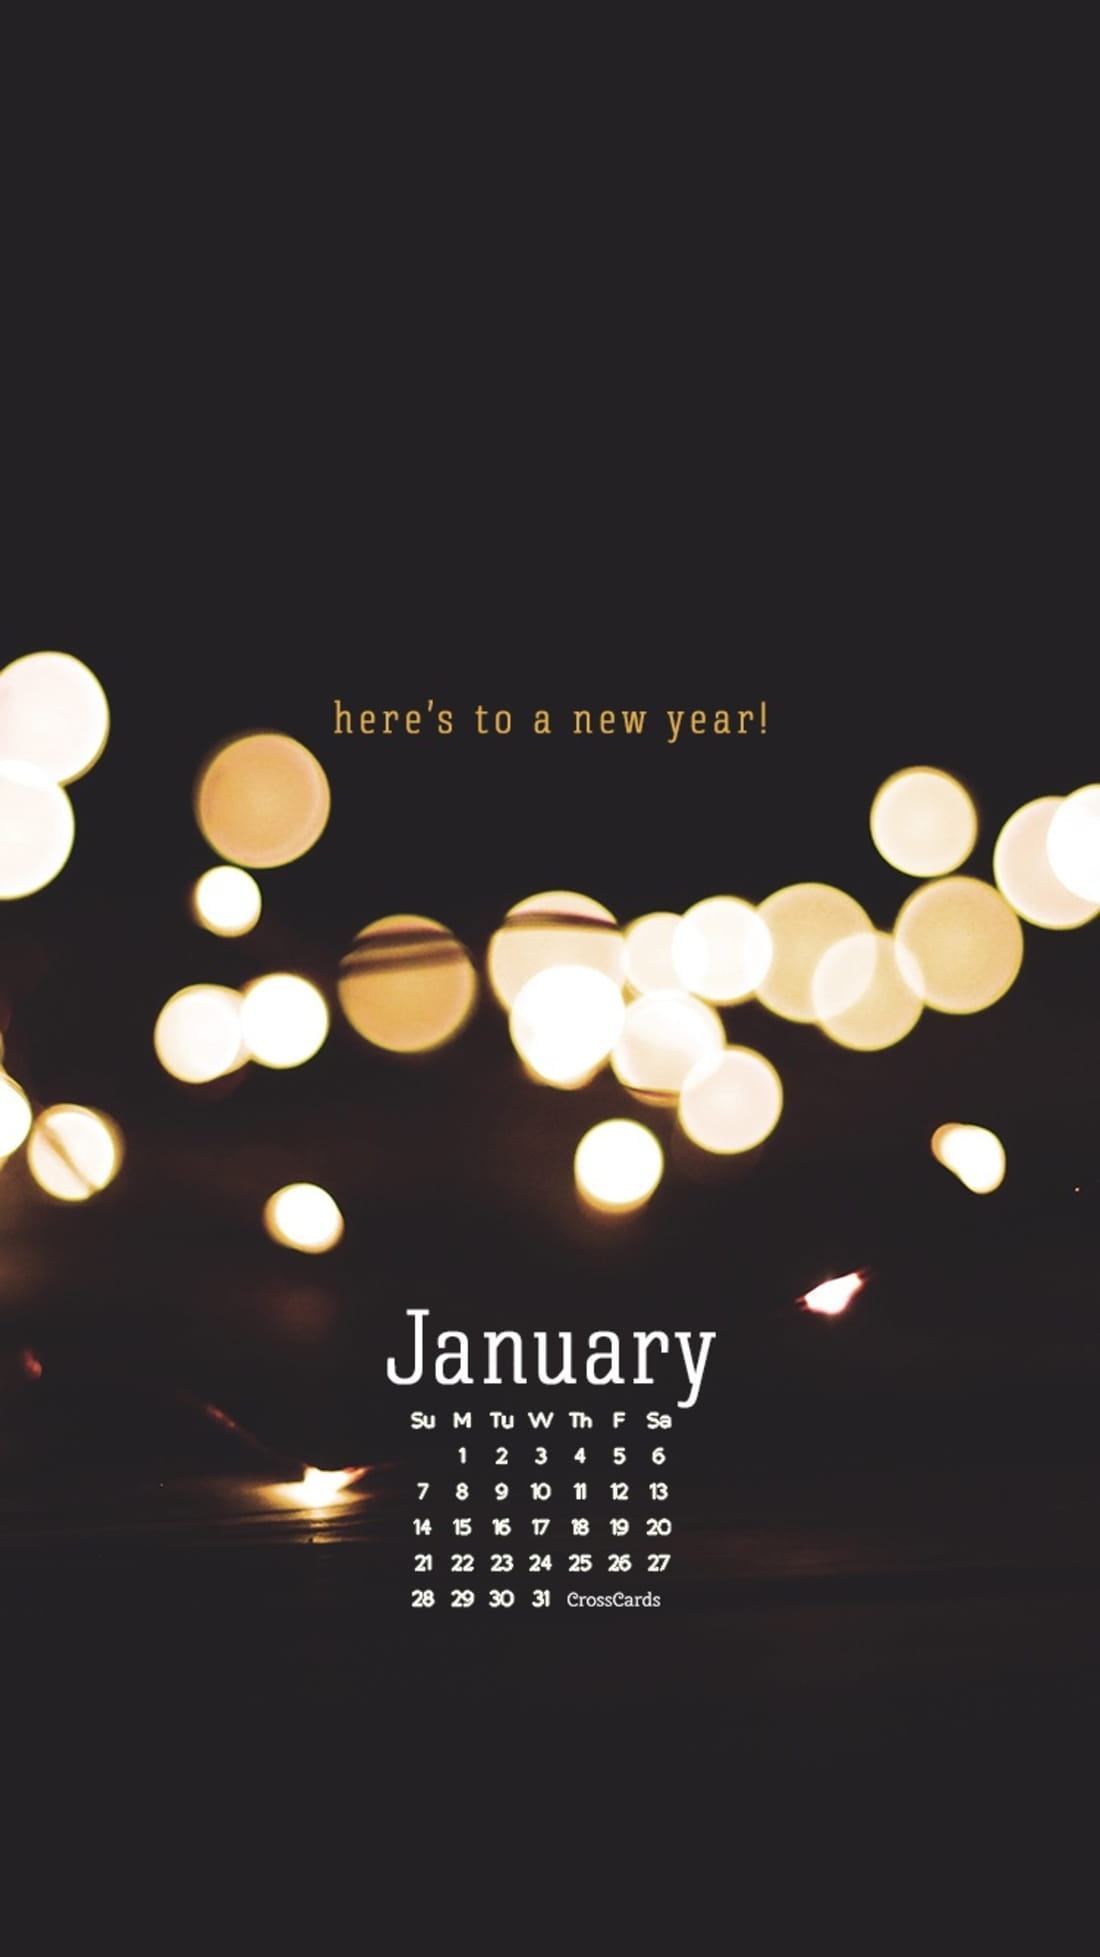 January 2018 - Here's to a New Year mobile phone wallpaper